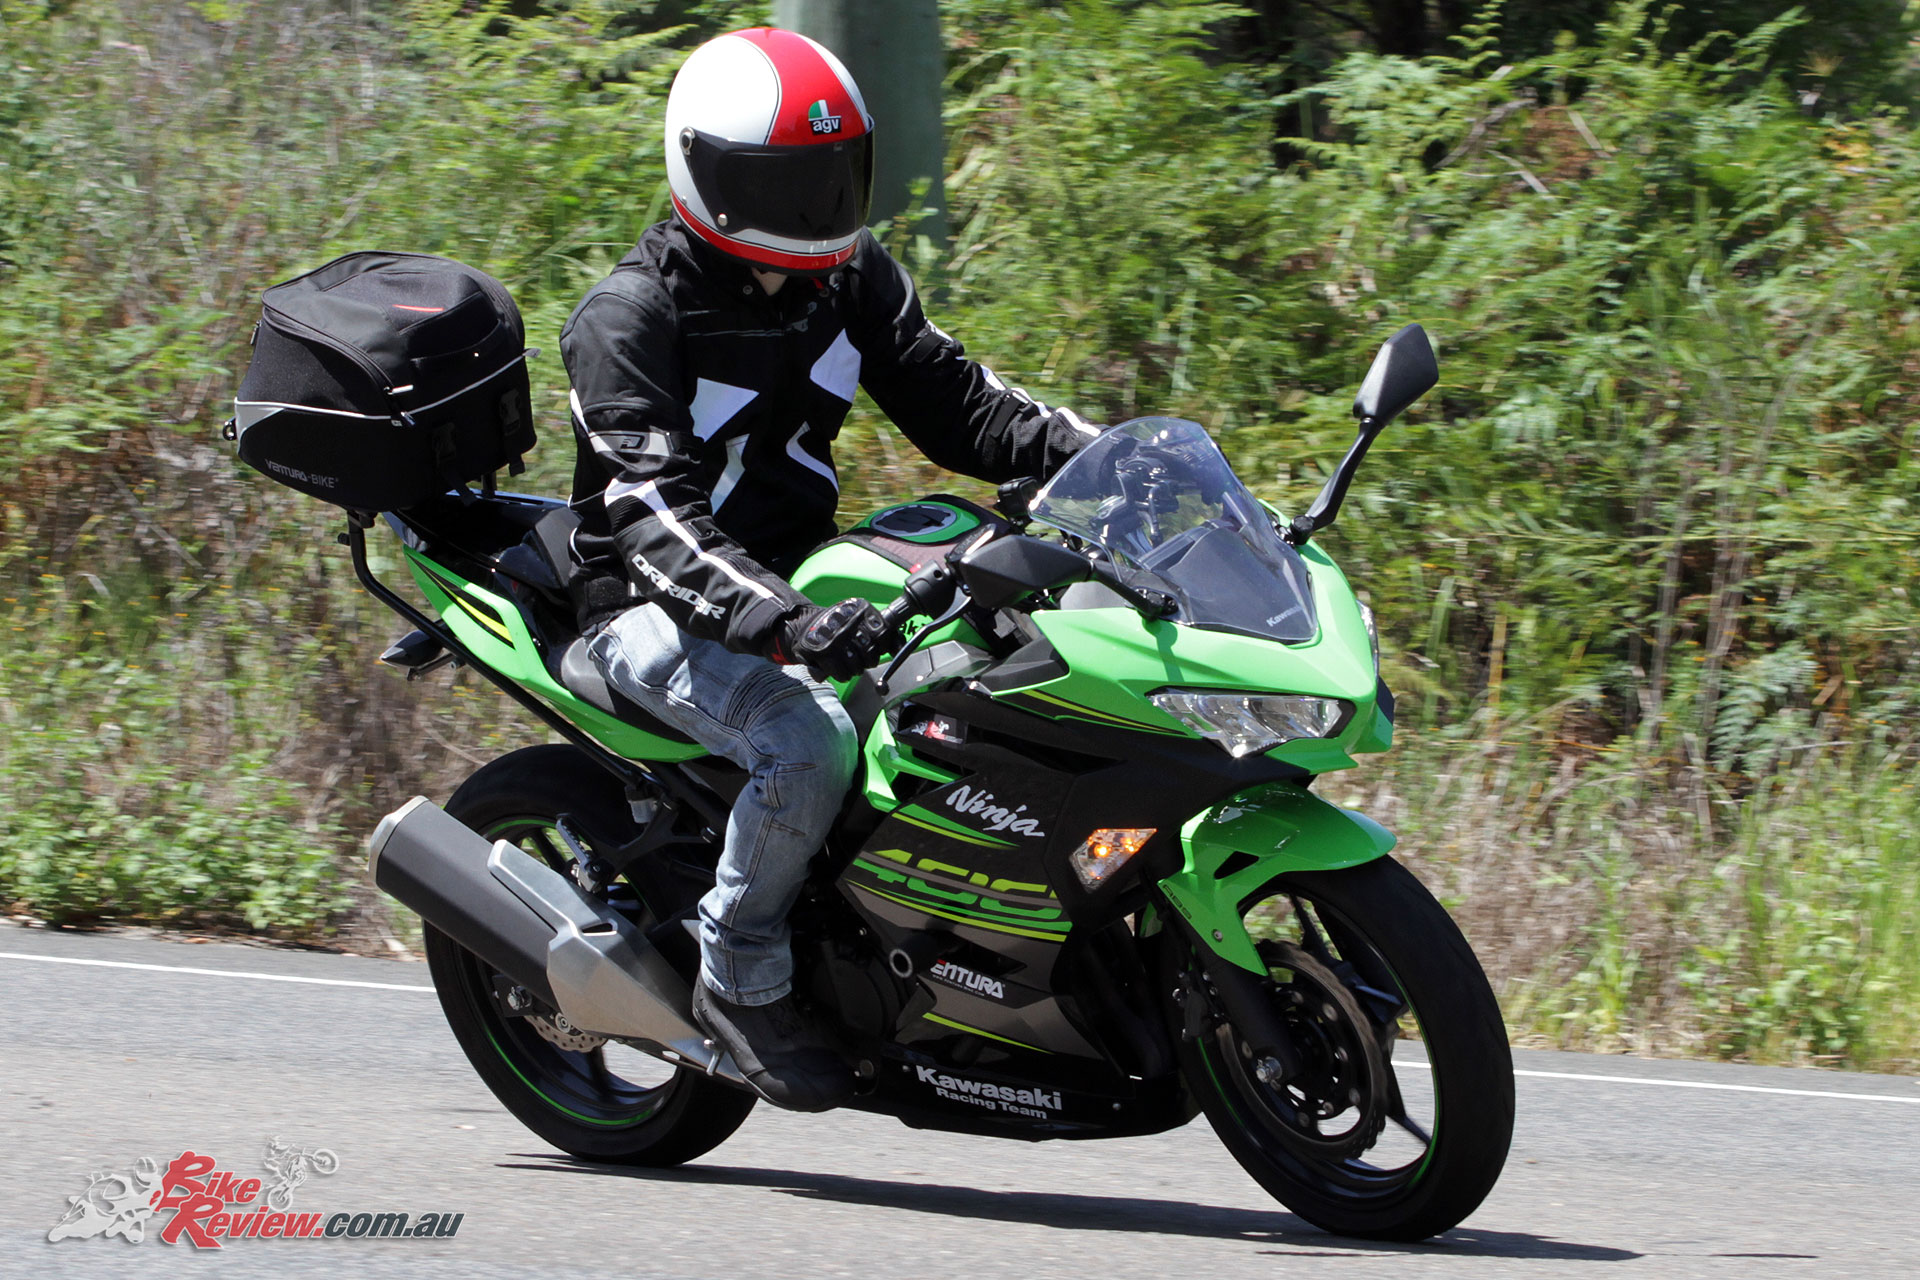 Pre-curved arms ensure great comfort although the leather across the arms and shoulders is very supple. Riding the Ninja 400, MT-09 Tracer or Daytona 675, the EXO 2 was well tailored to any bike type